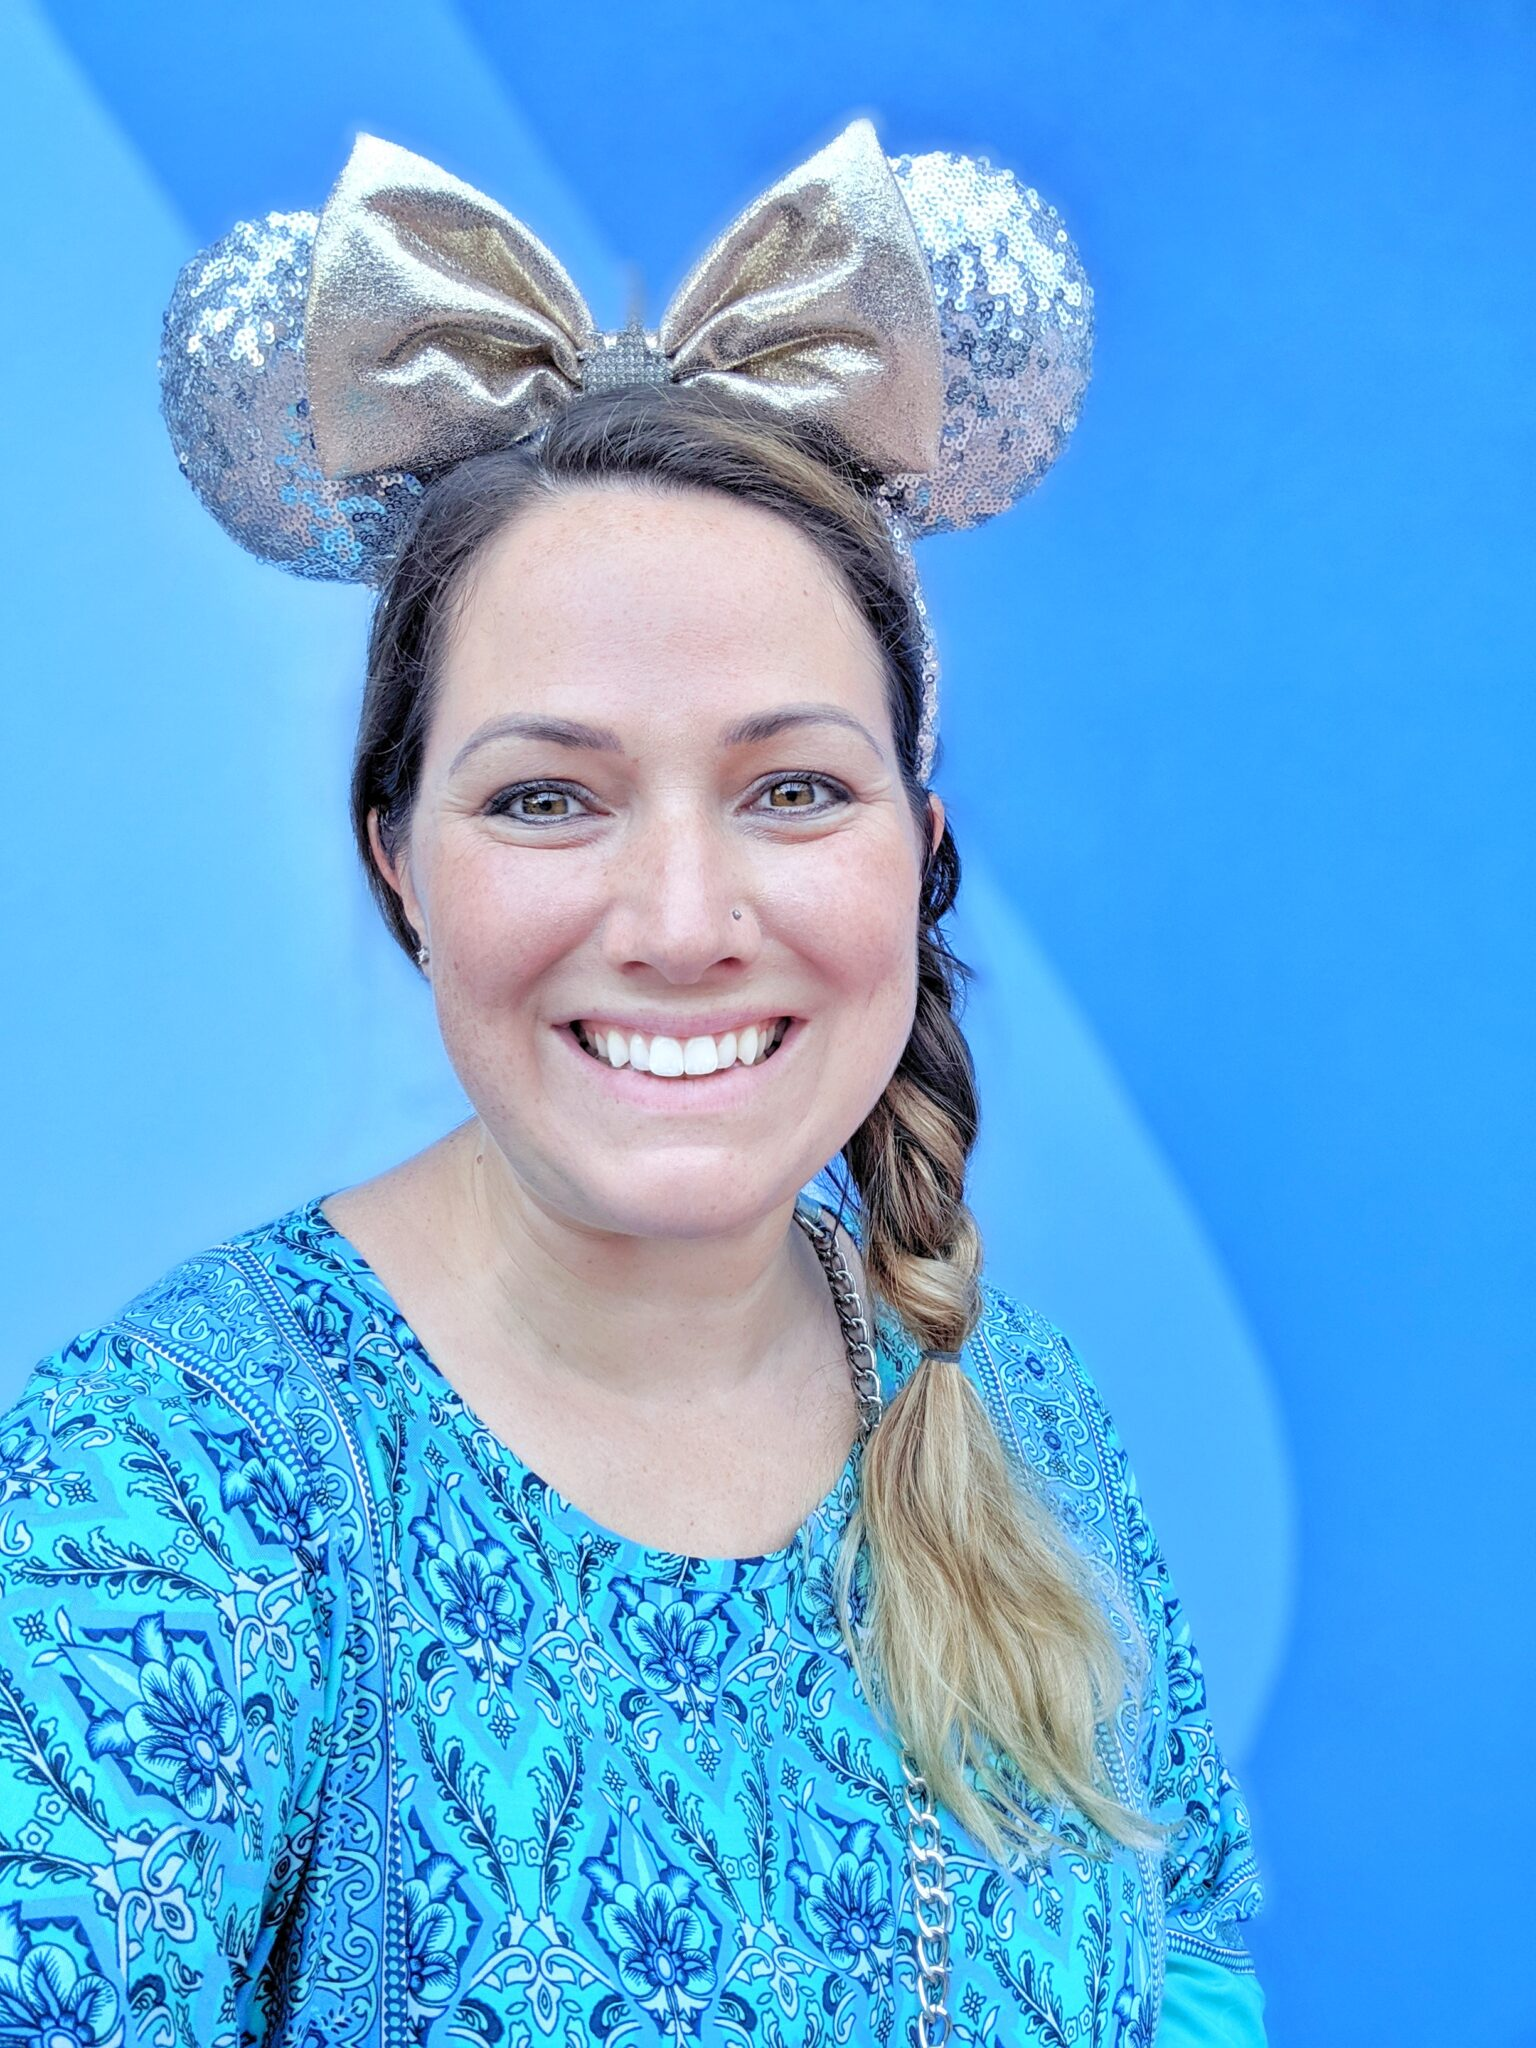 Best Spots for Photos at Walt Disney World All Things with Purpose Sarah Lemp 11